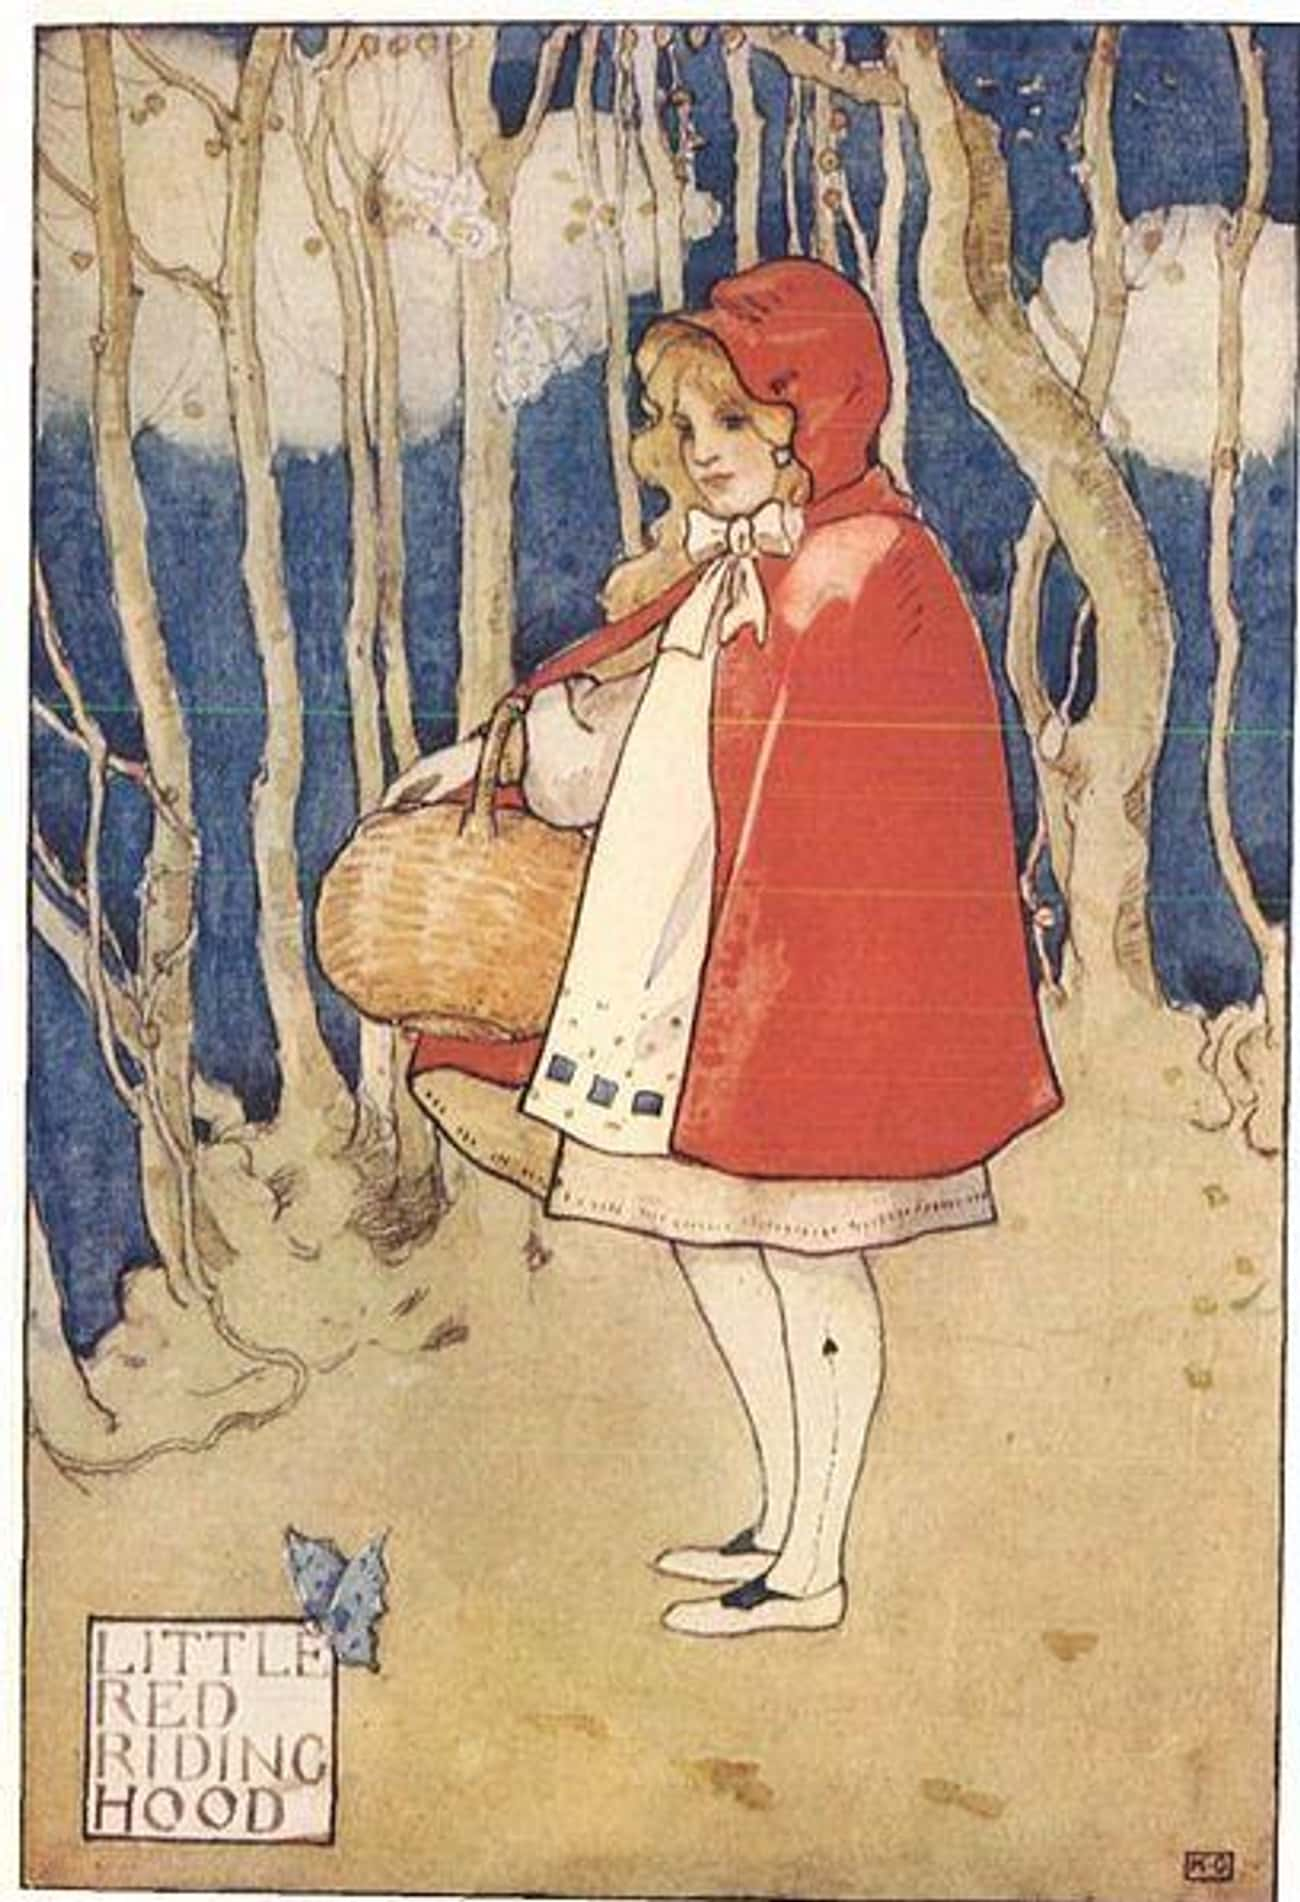 In Some Versions Of The Story, There Is No Little Red Riding Hood